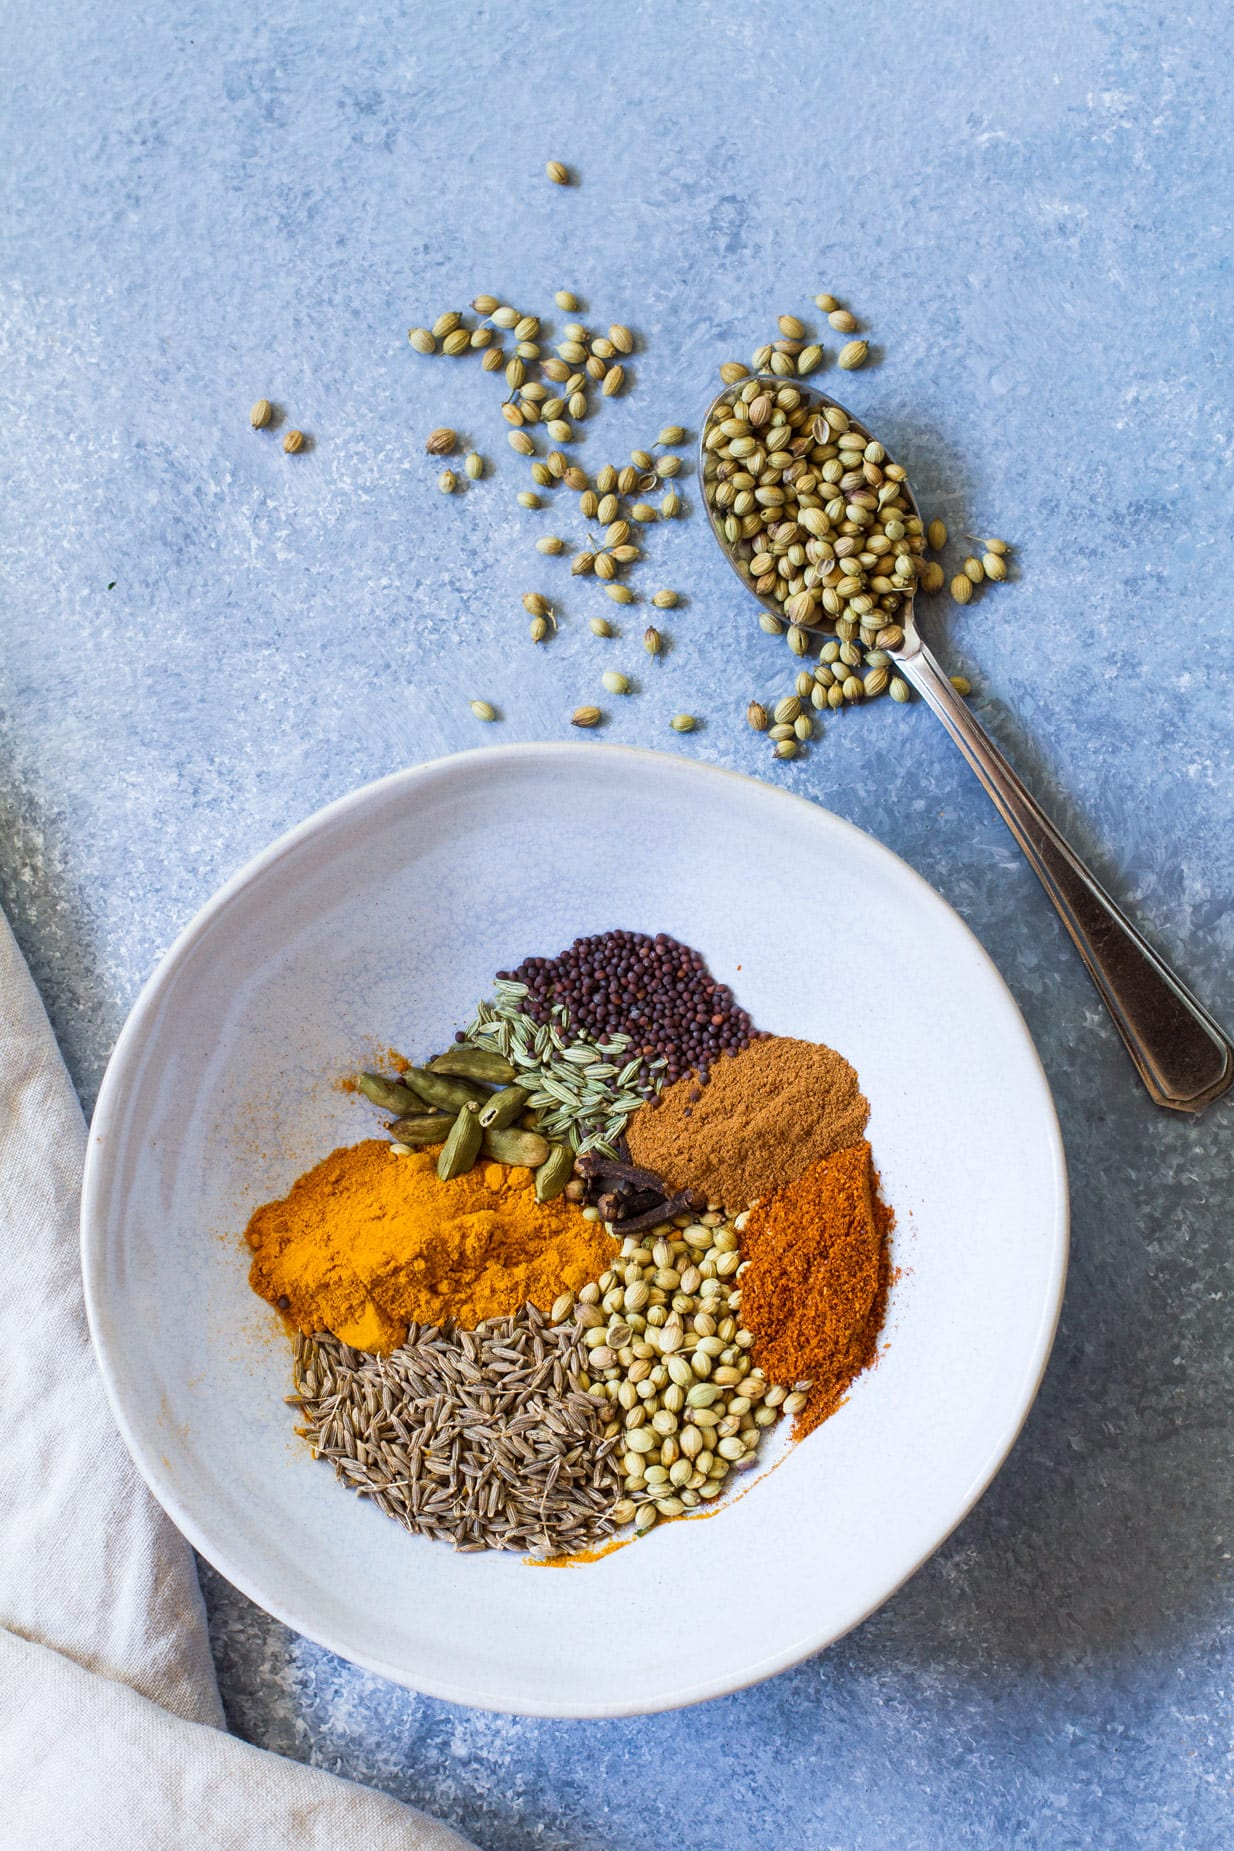 Spices to make curry in a blue bowl on a blue background.